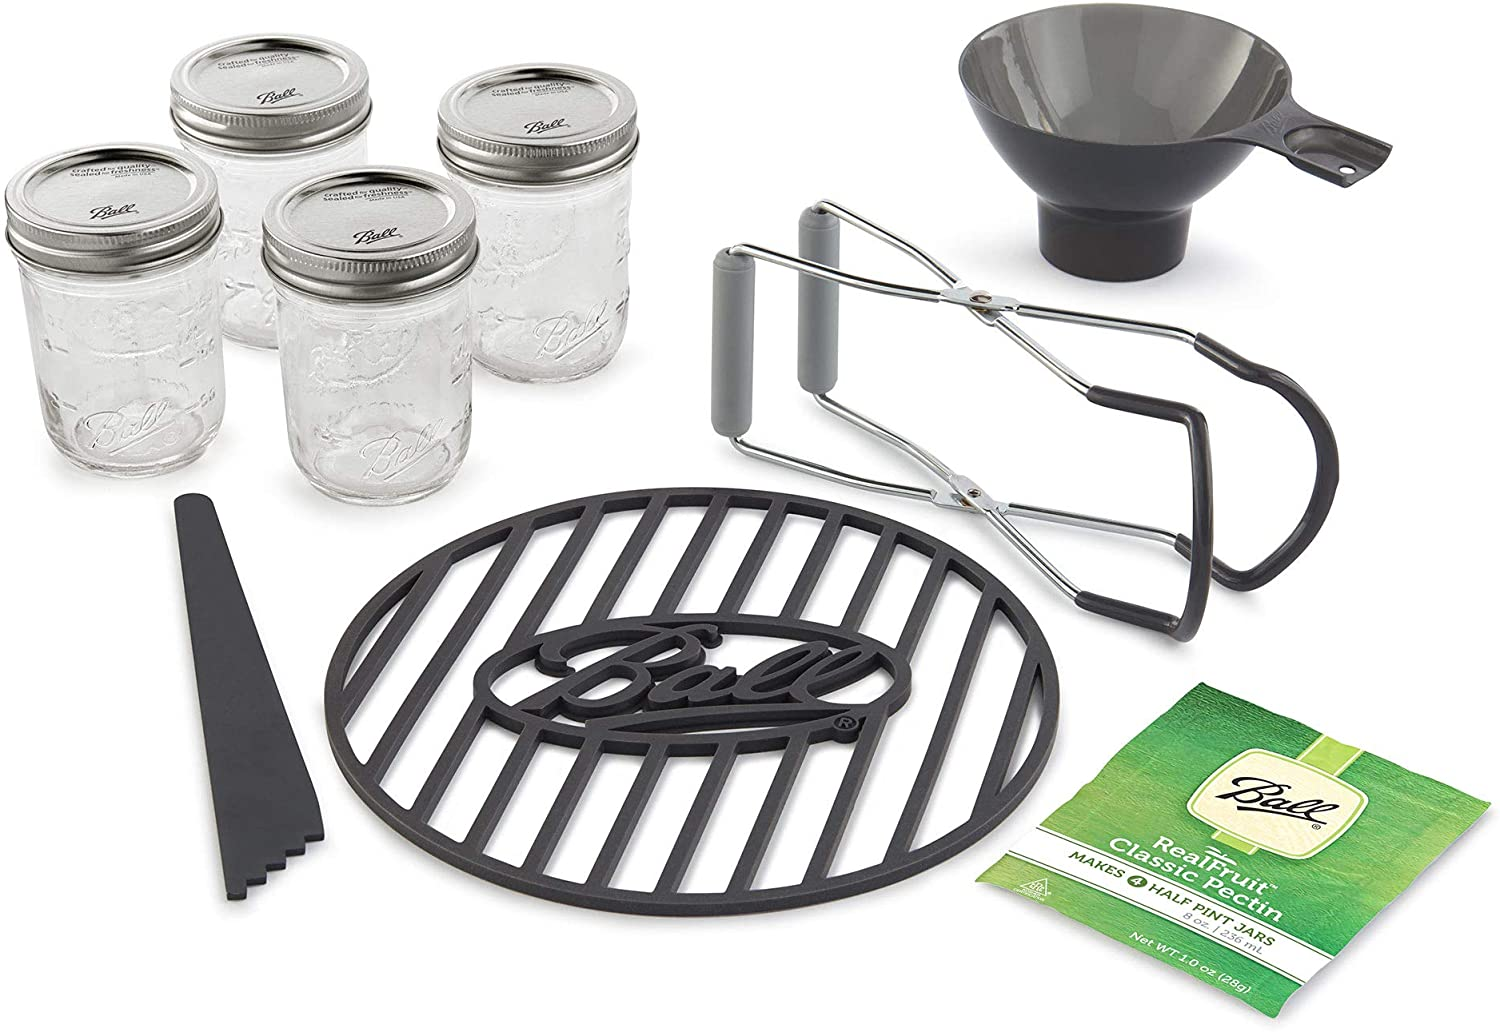 Ball 1440010808 Preserving Starter Kit, 9-Piece, Clear